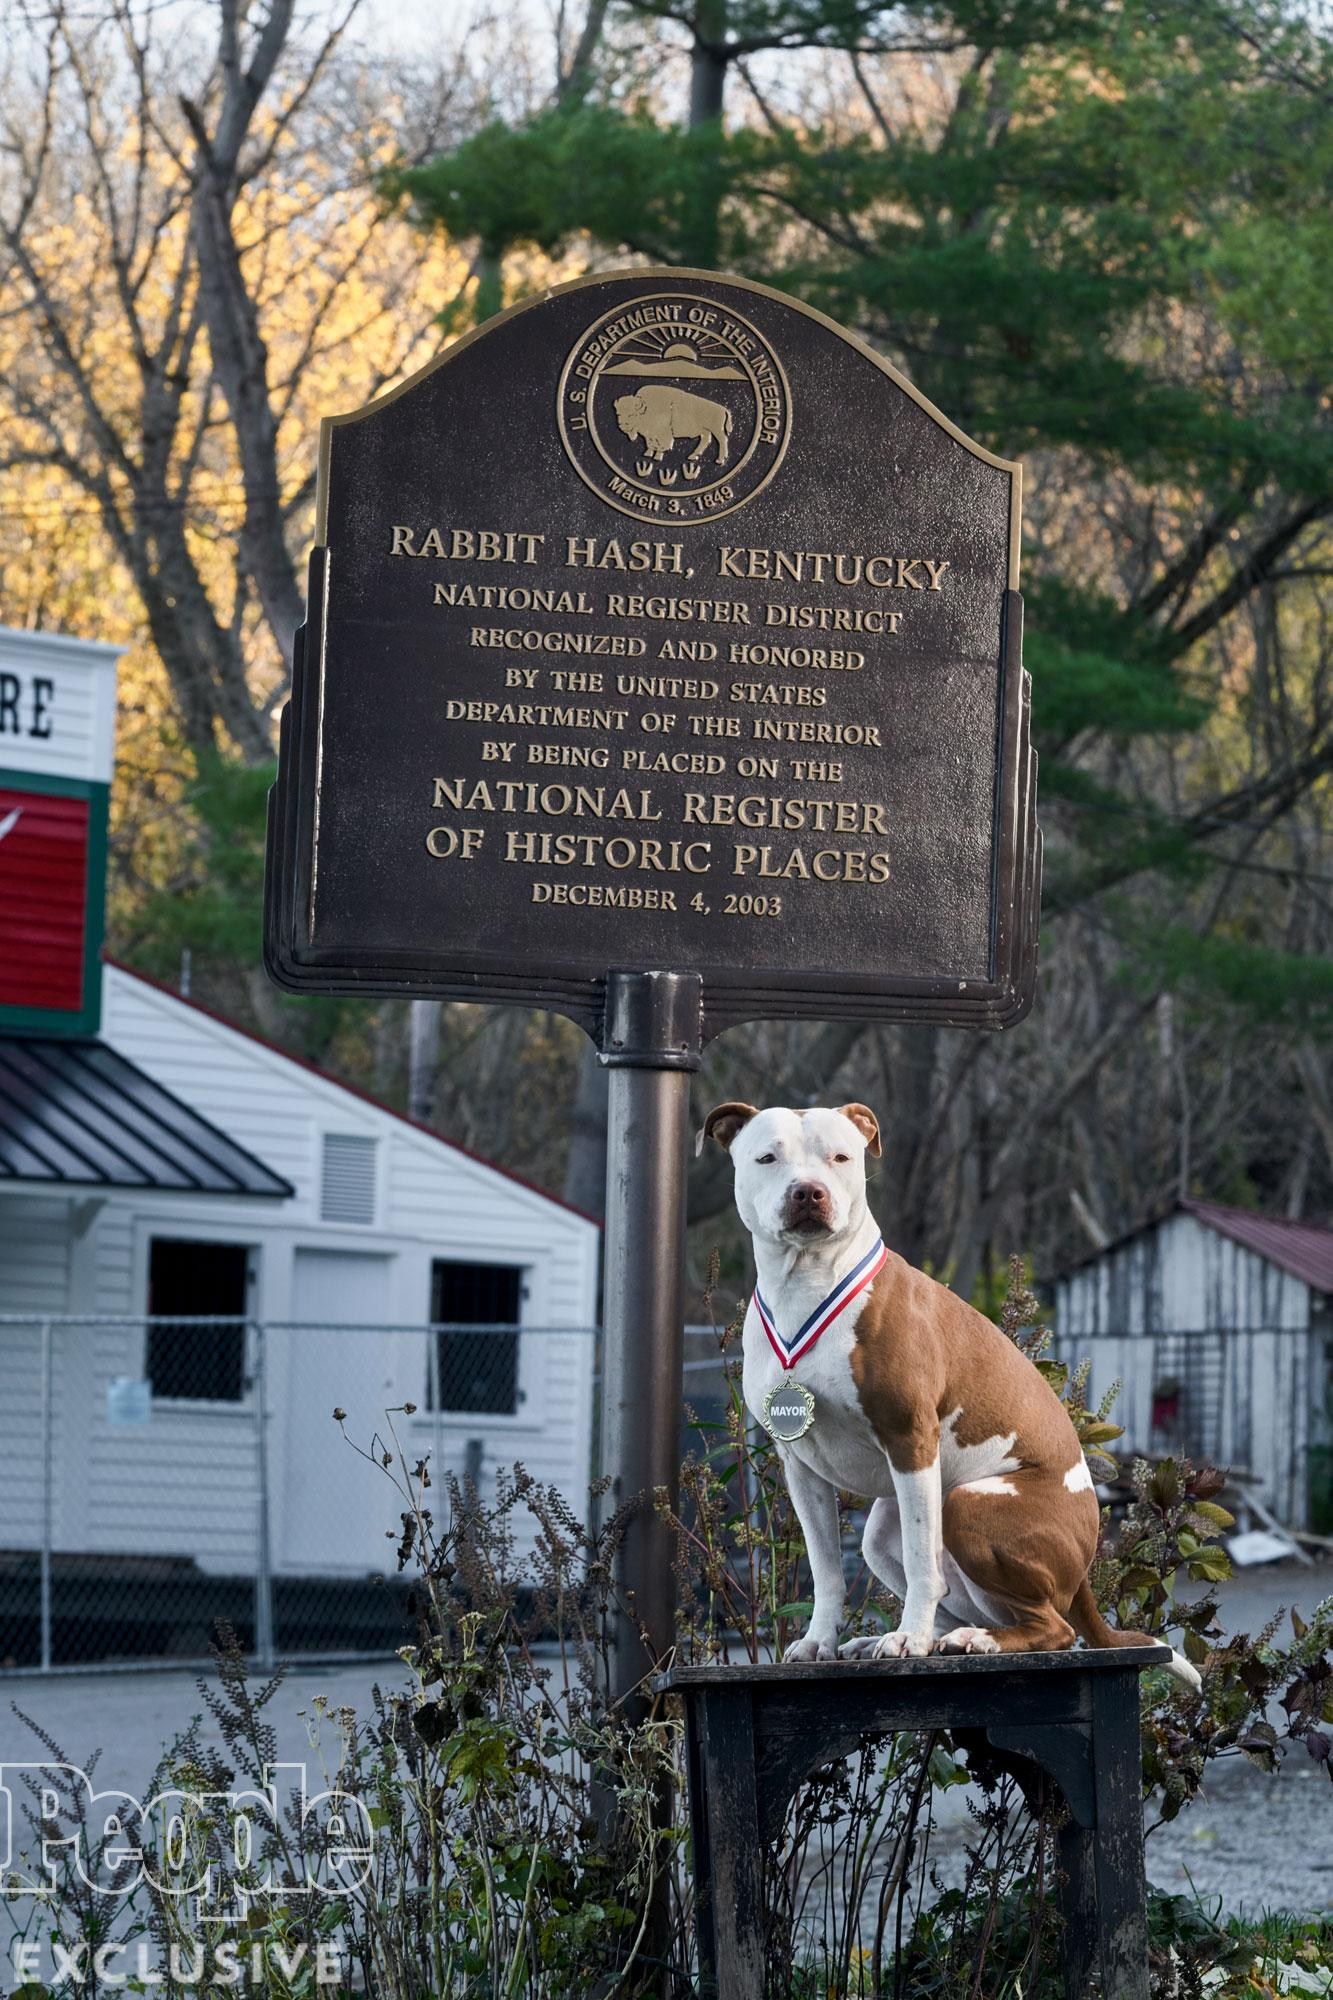 PHOTOS: Kentucky's Cutest Canine Mayor Shows PEOPLE Around Her Town